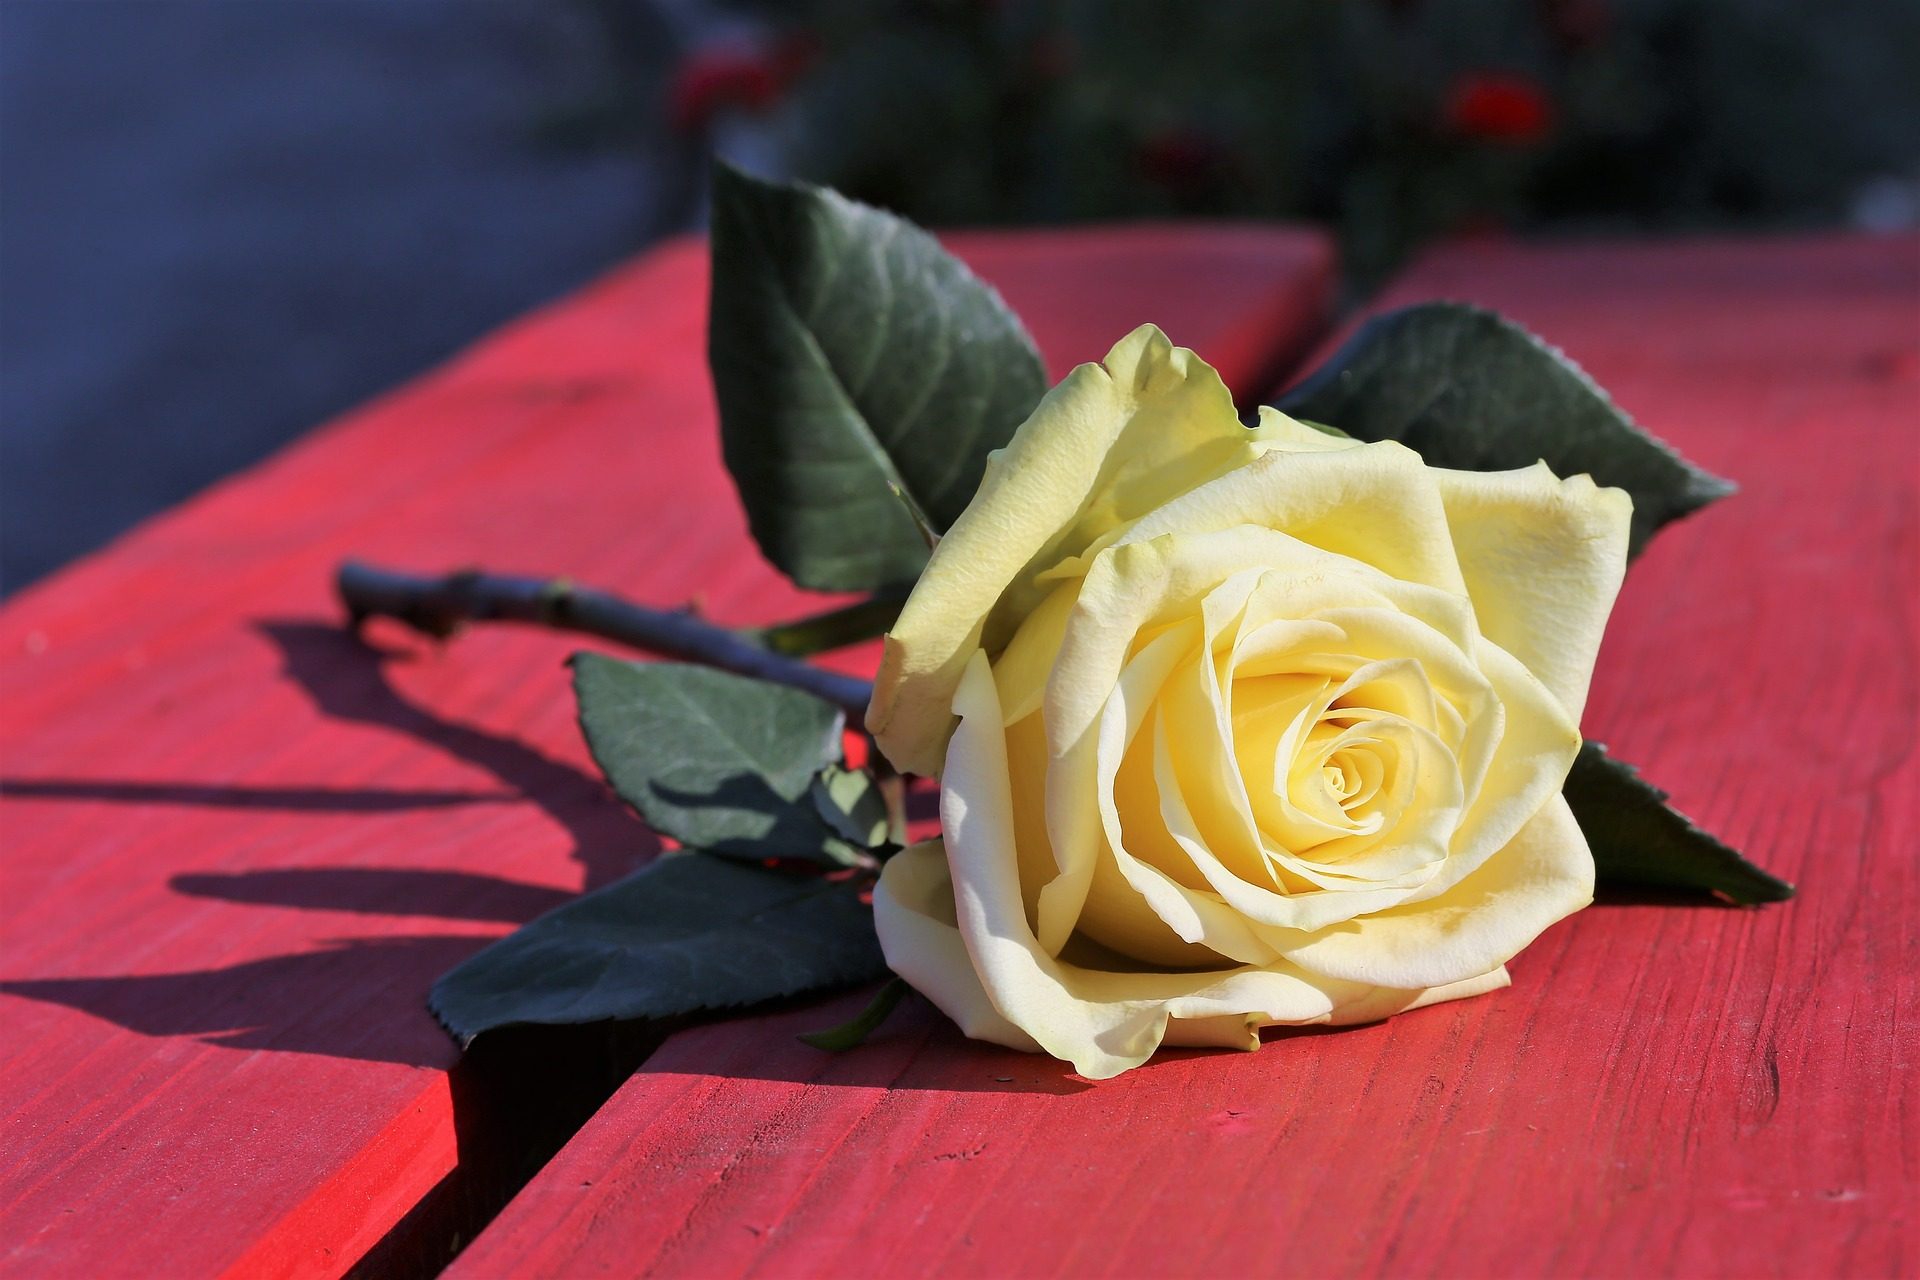 yellow-rose-on-red-bench-3624504_1920